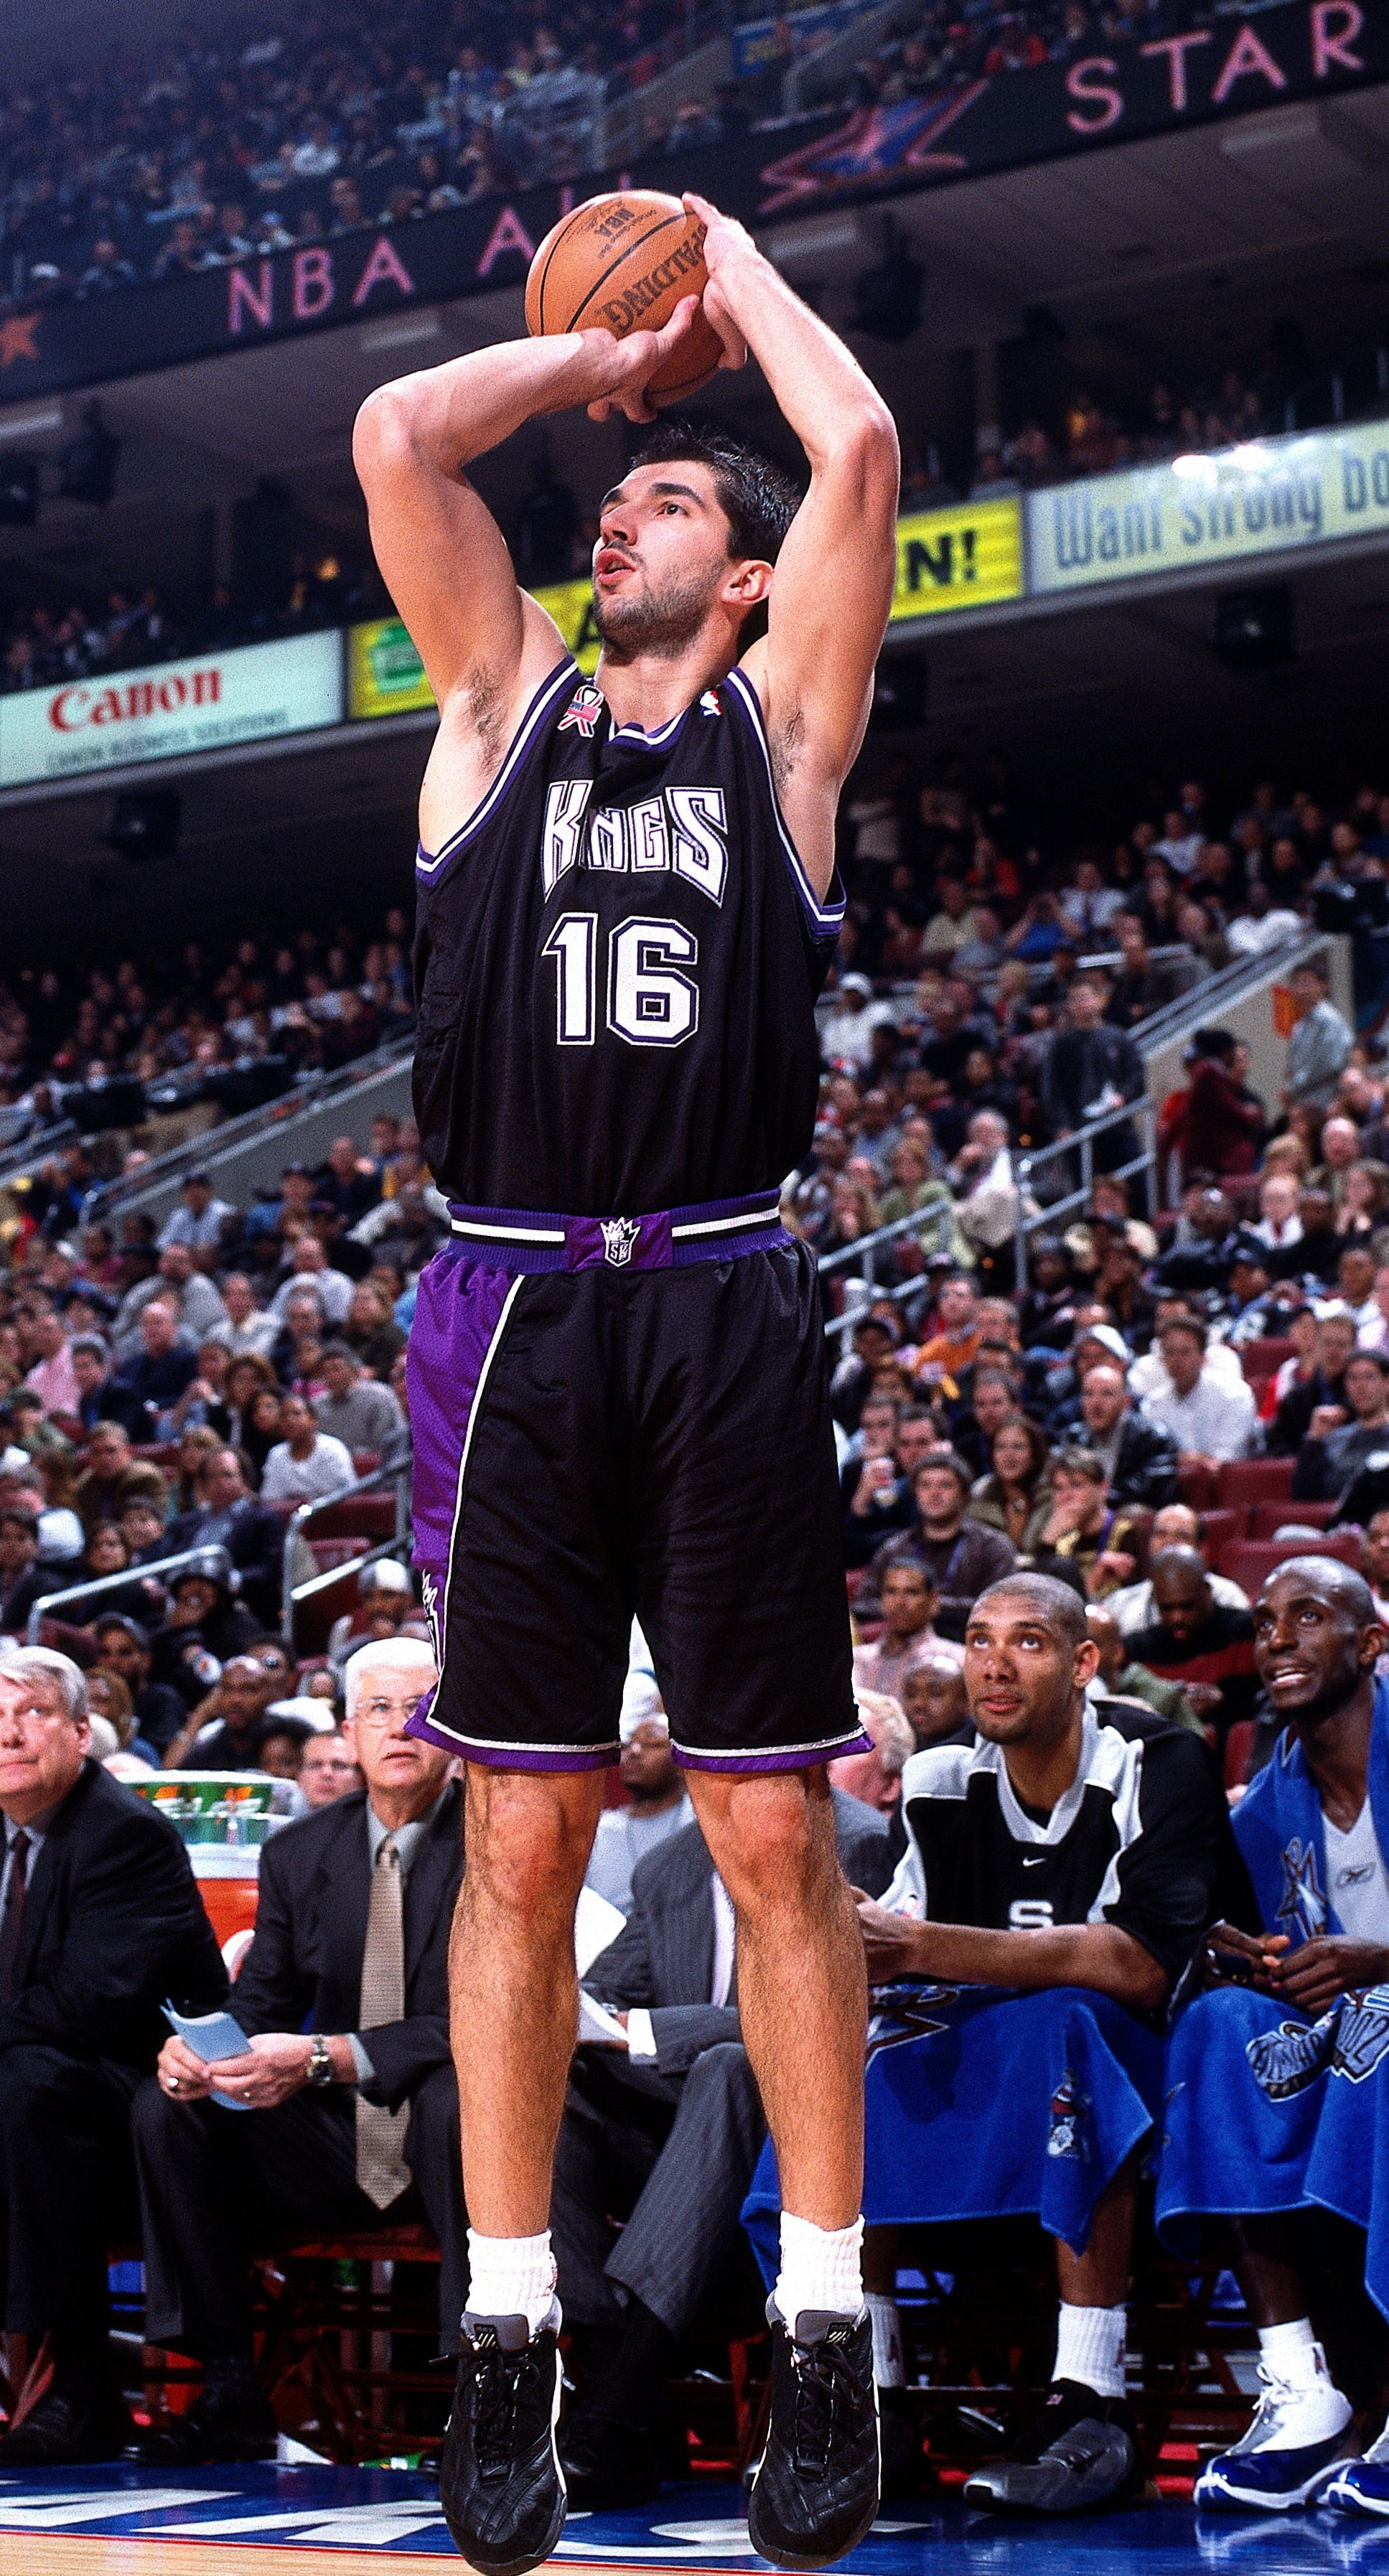 956860ec4 Peja Stojakovic (Sacramento Kings). I miss the good ol  days of this team!